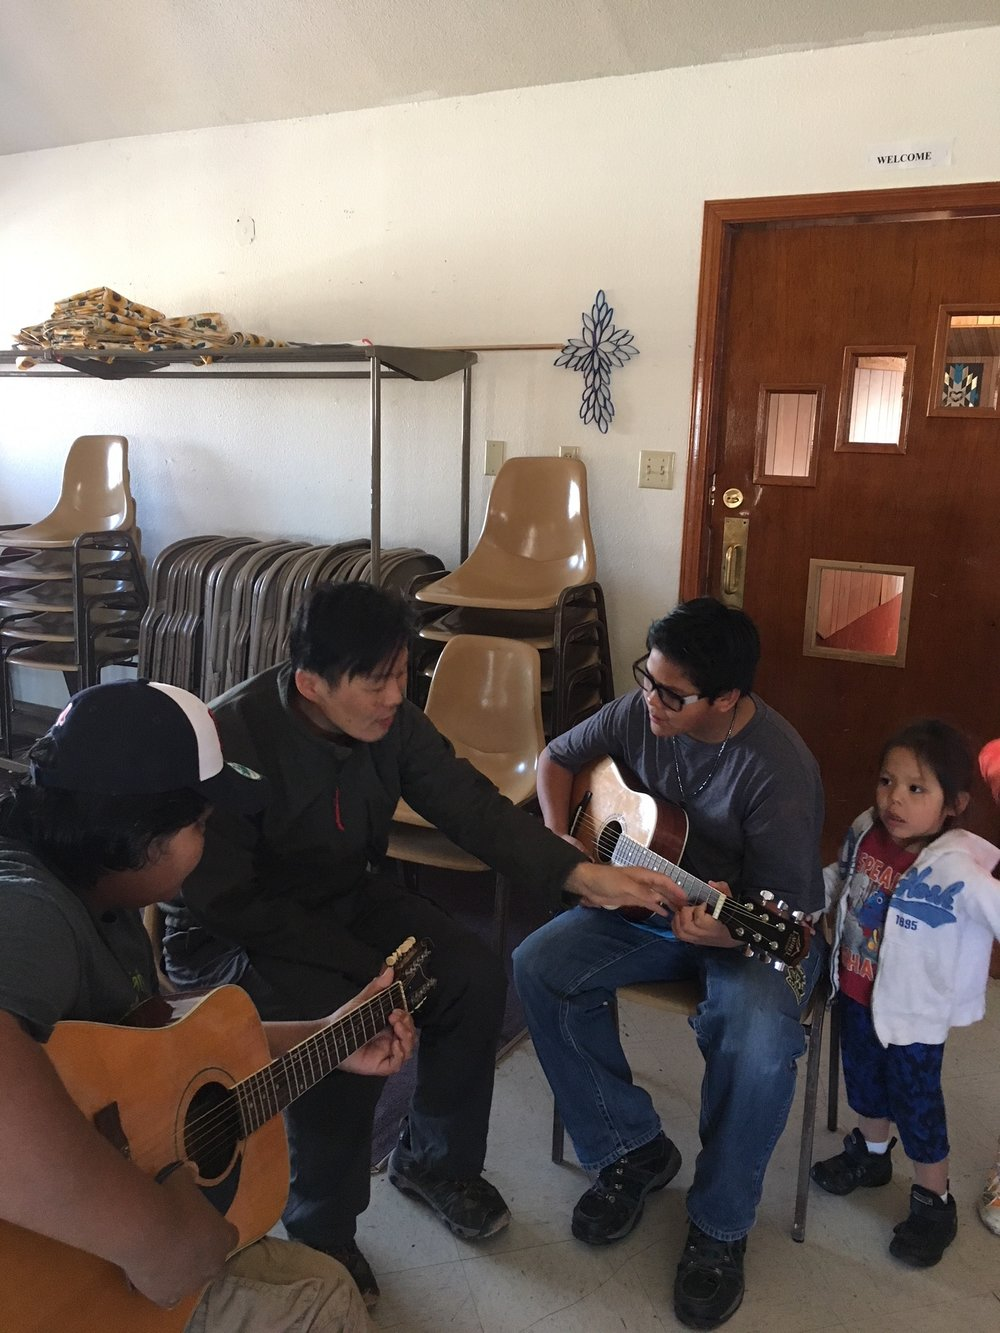 sam kim jamming in navajo lutheran indian ministries